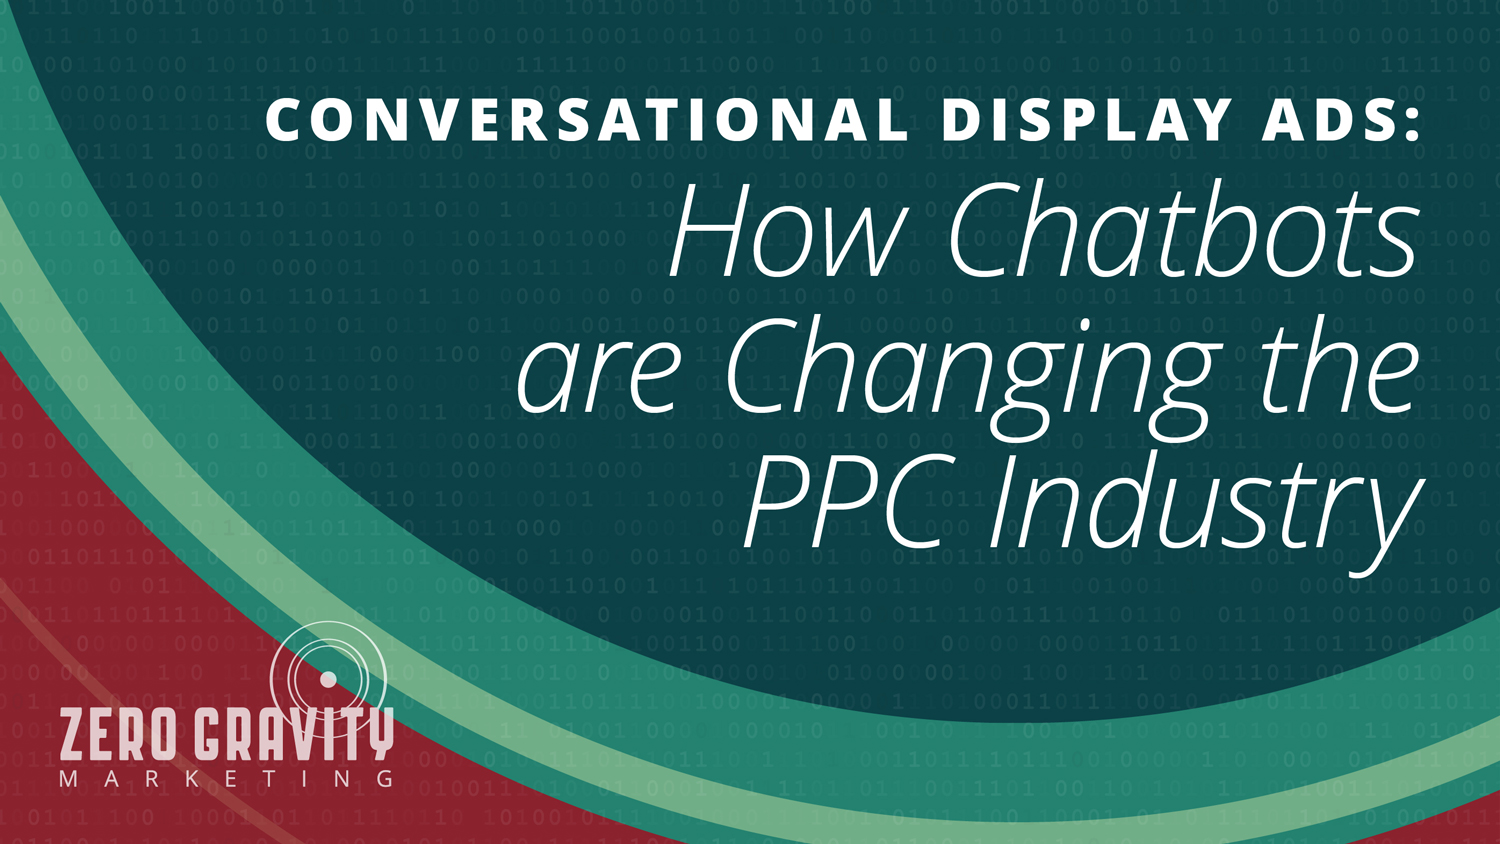 Conversational Display Ads: How Chatbots are Changing PPC